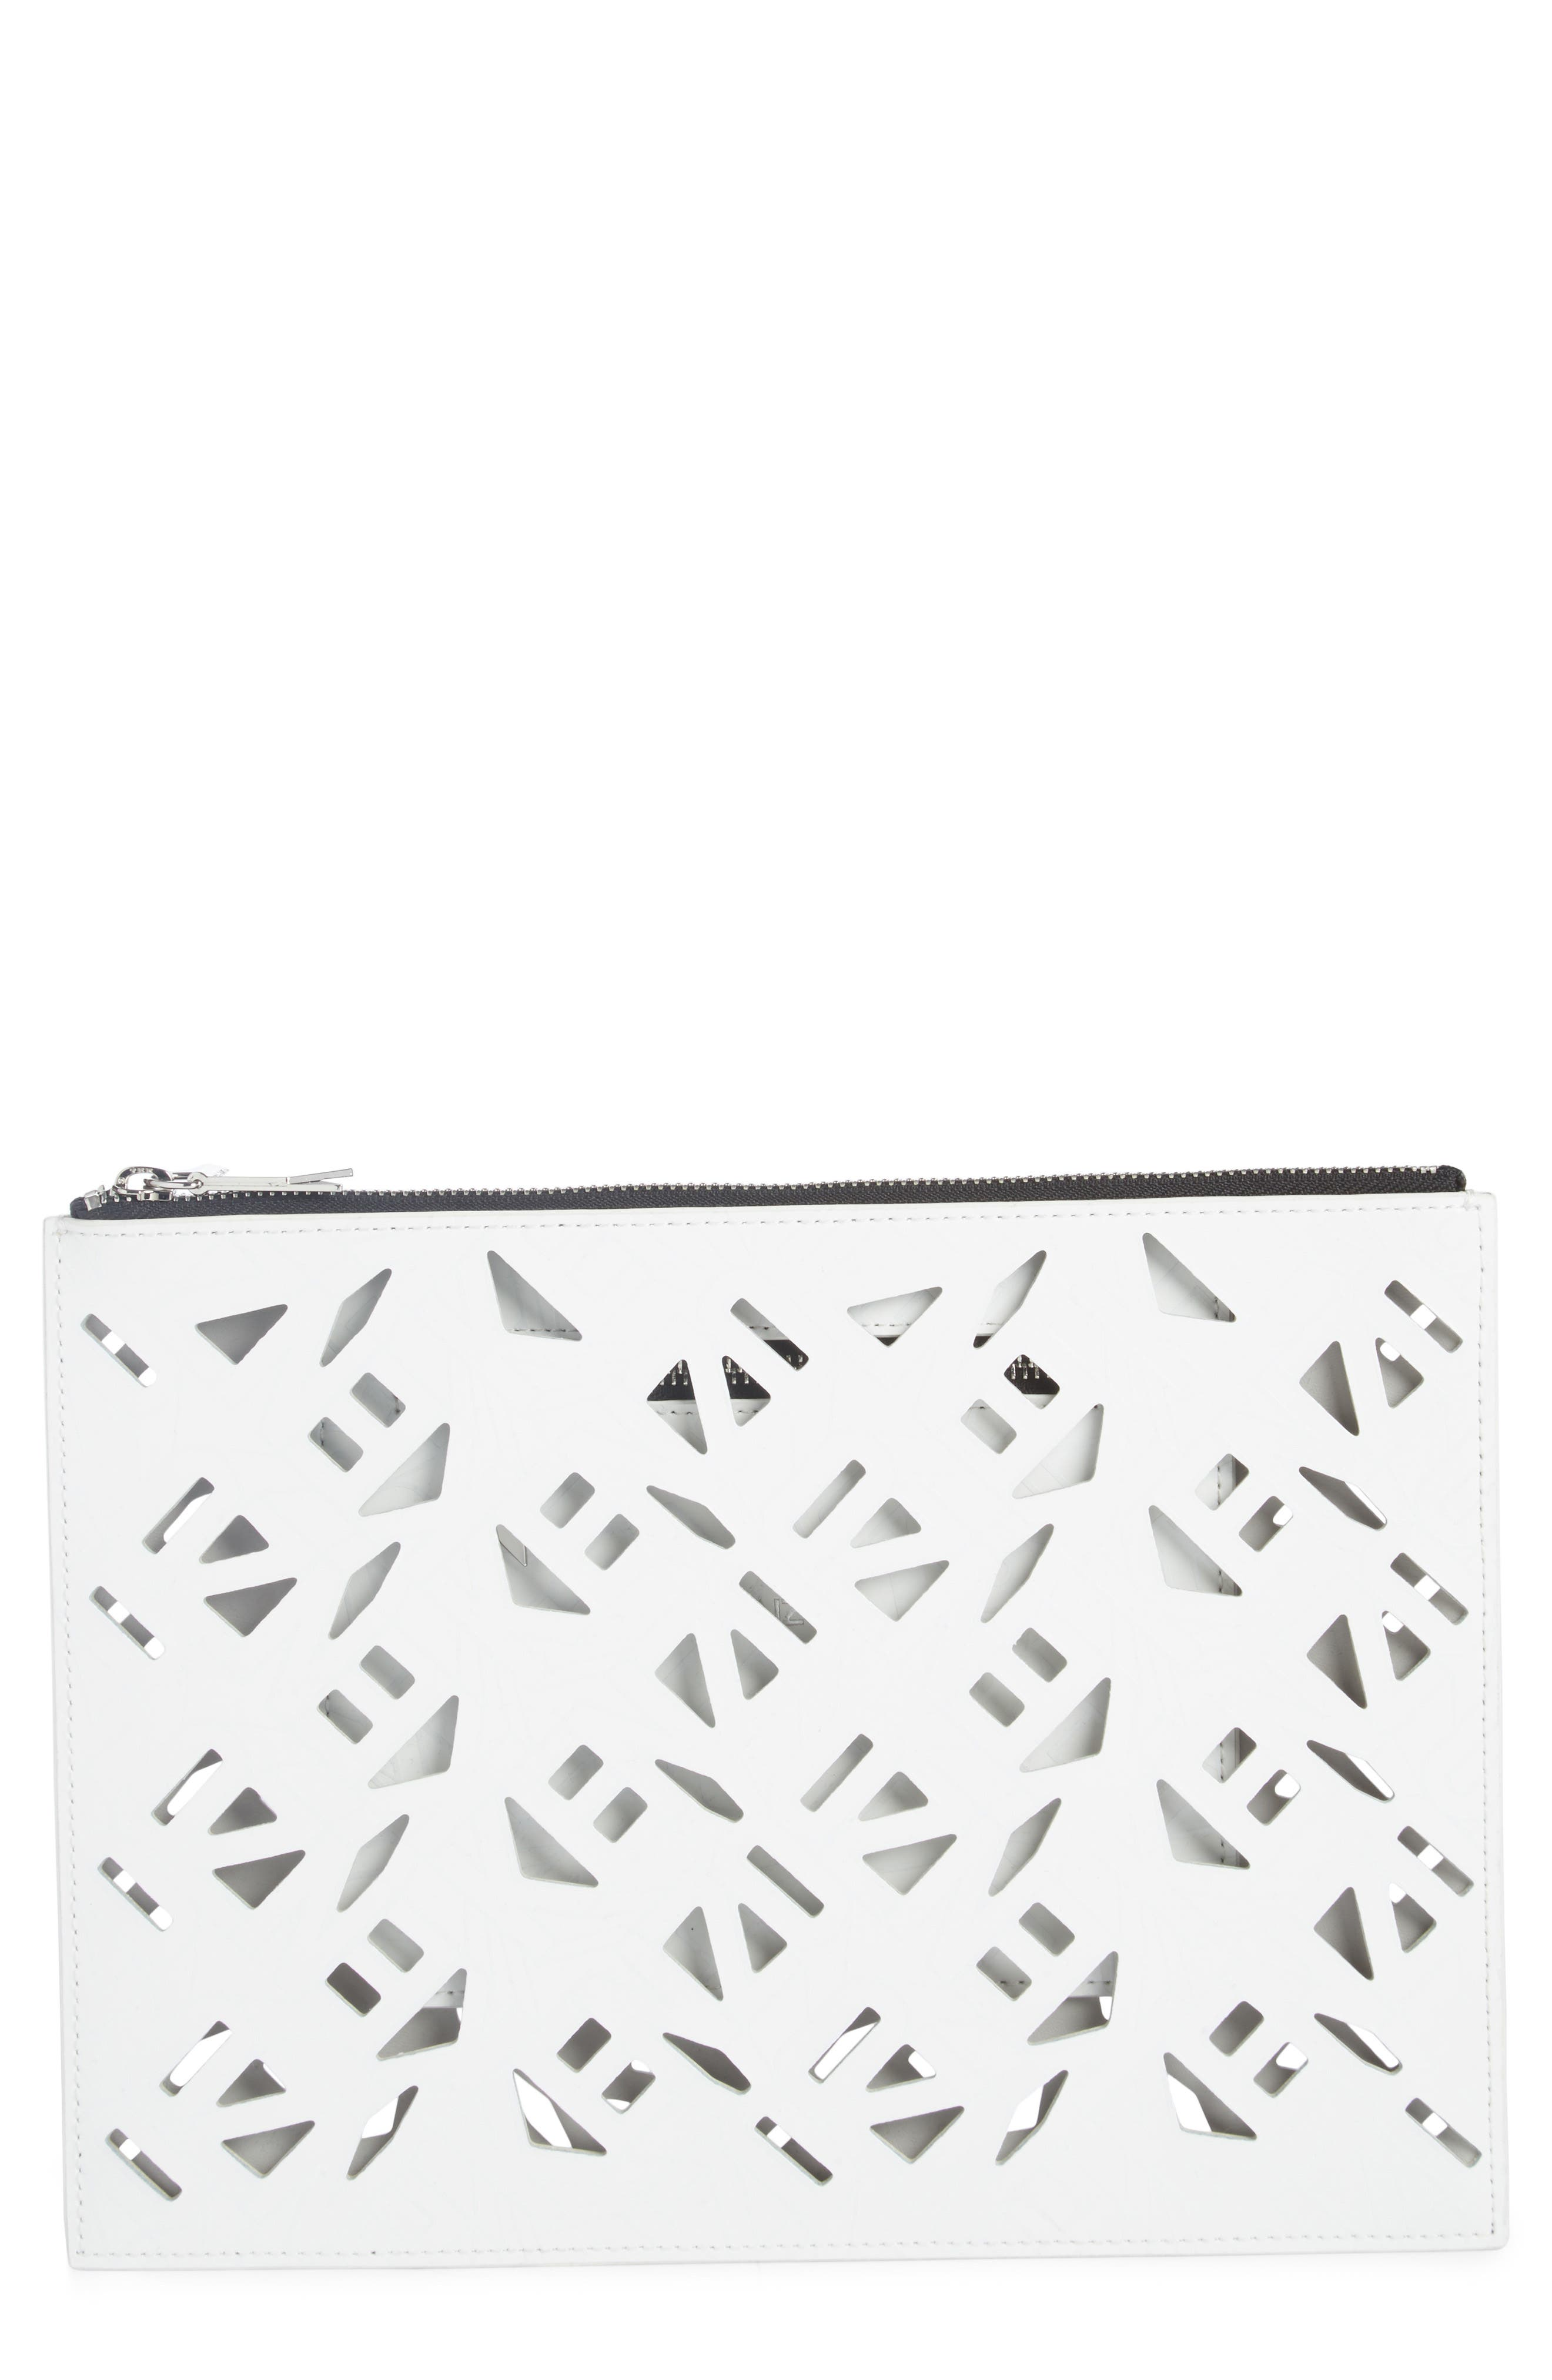 Alternate Image 1 Selected - KENZO Art Gummy Perforated Leather A4 Pouch